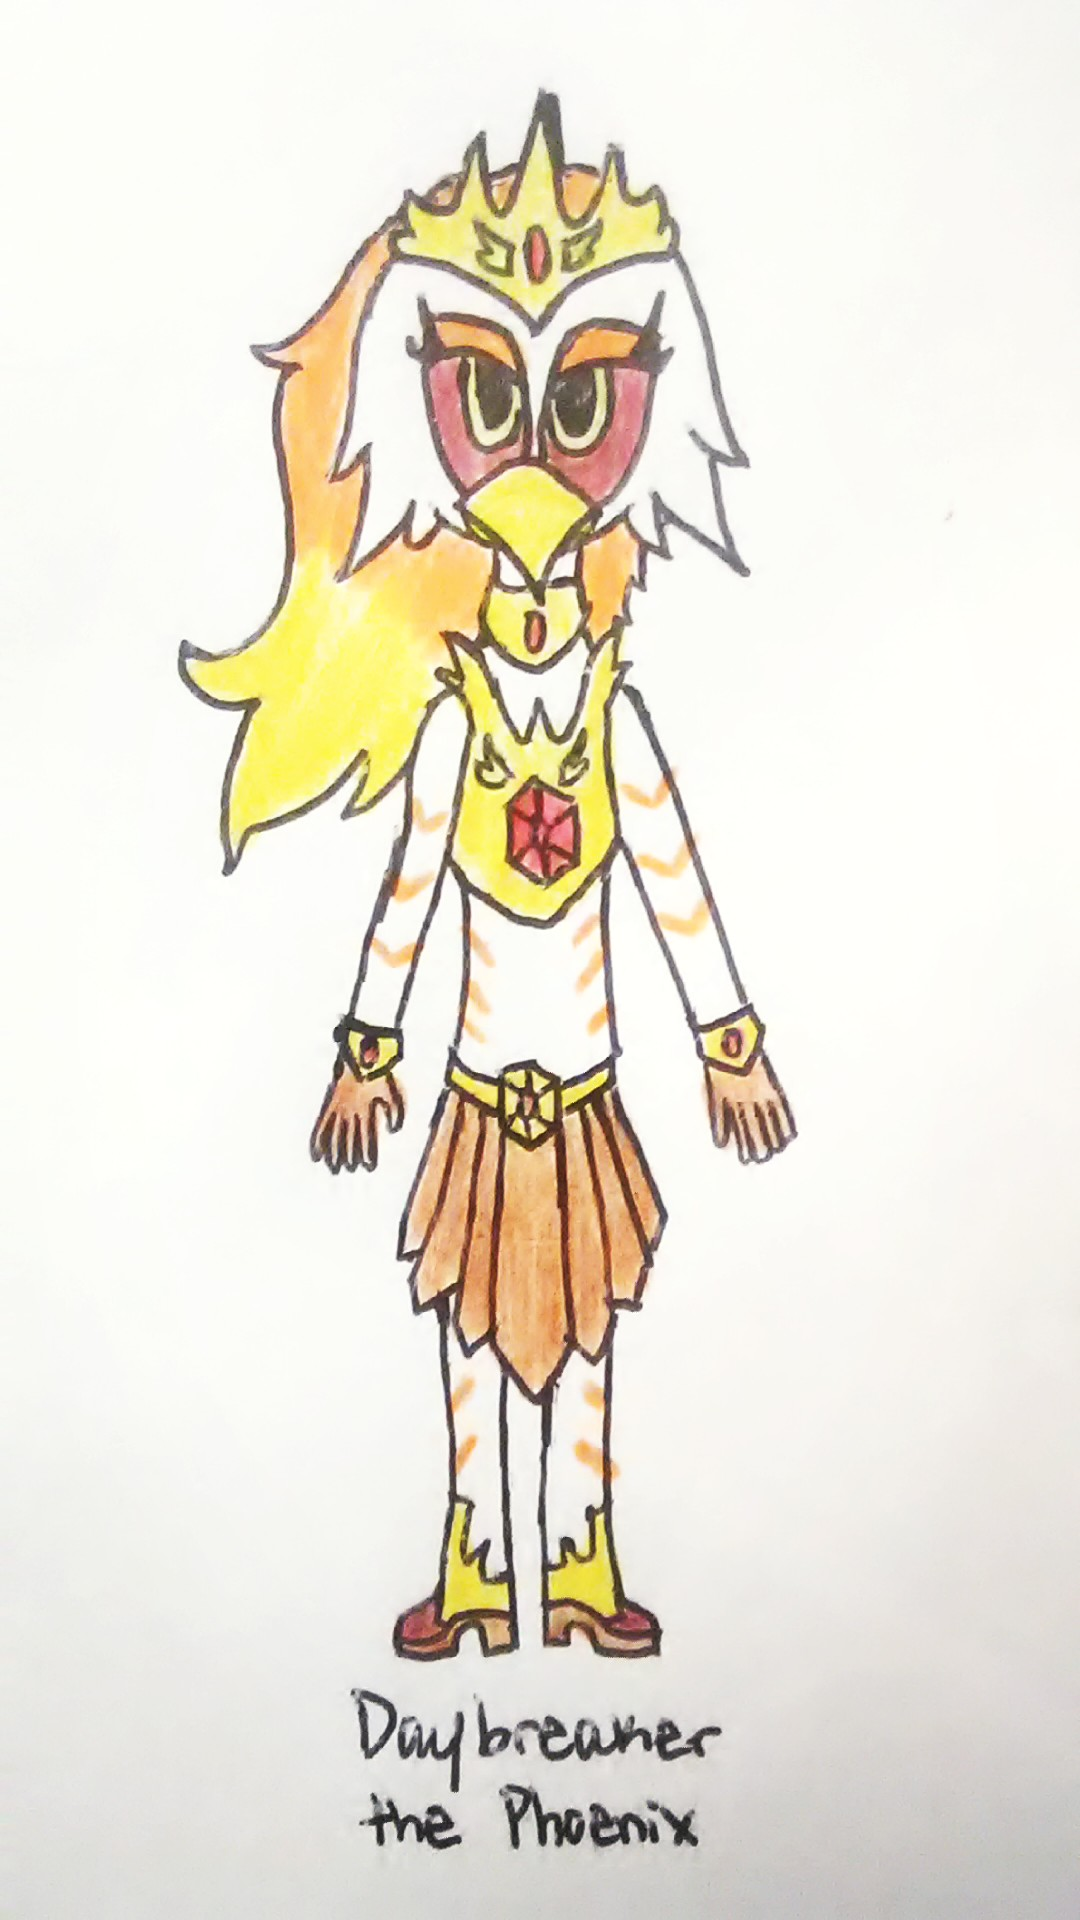 Daybreaker the Phoenix